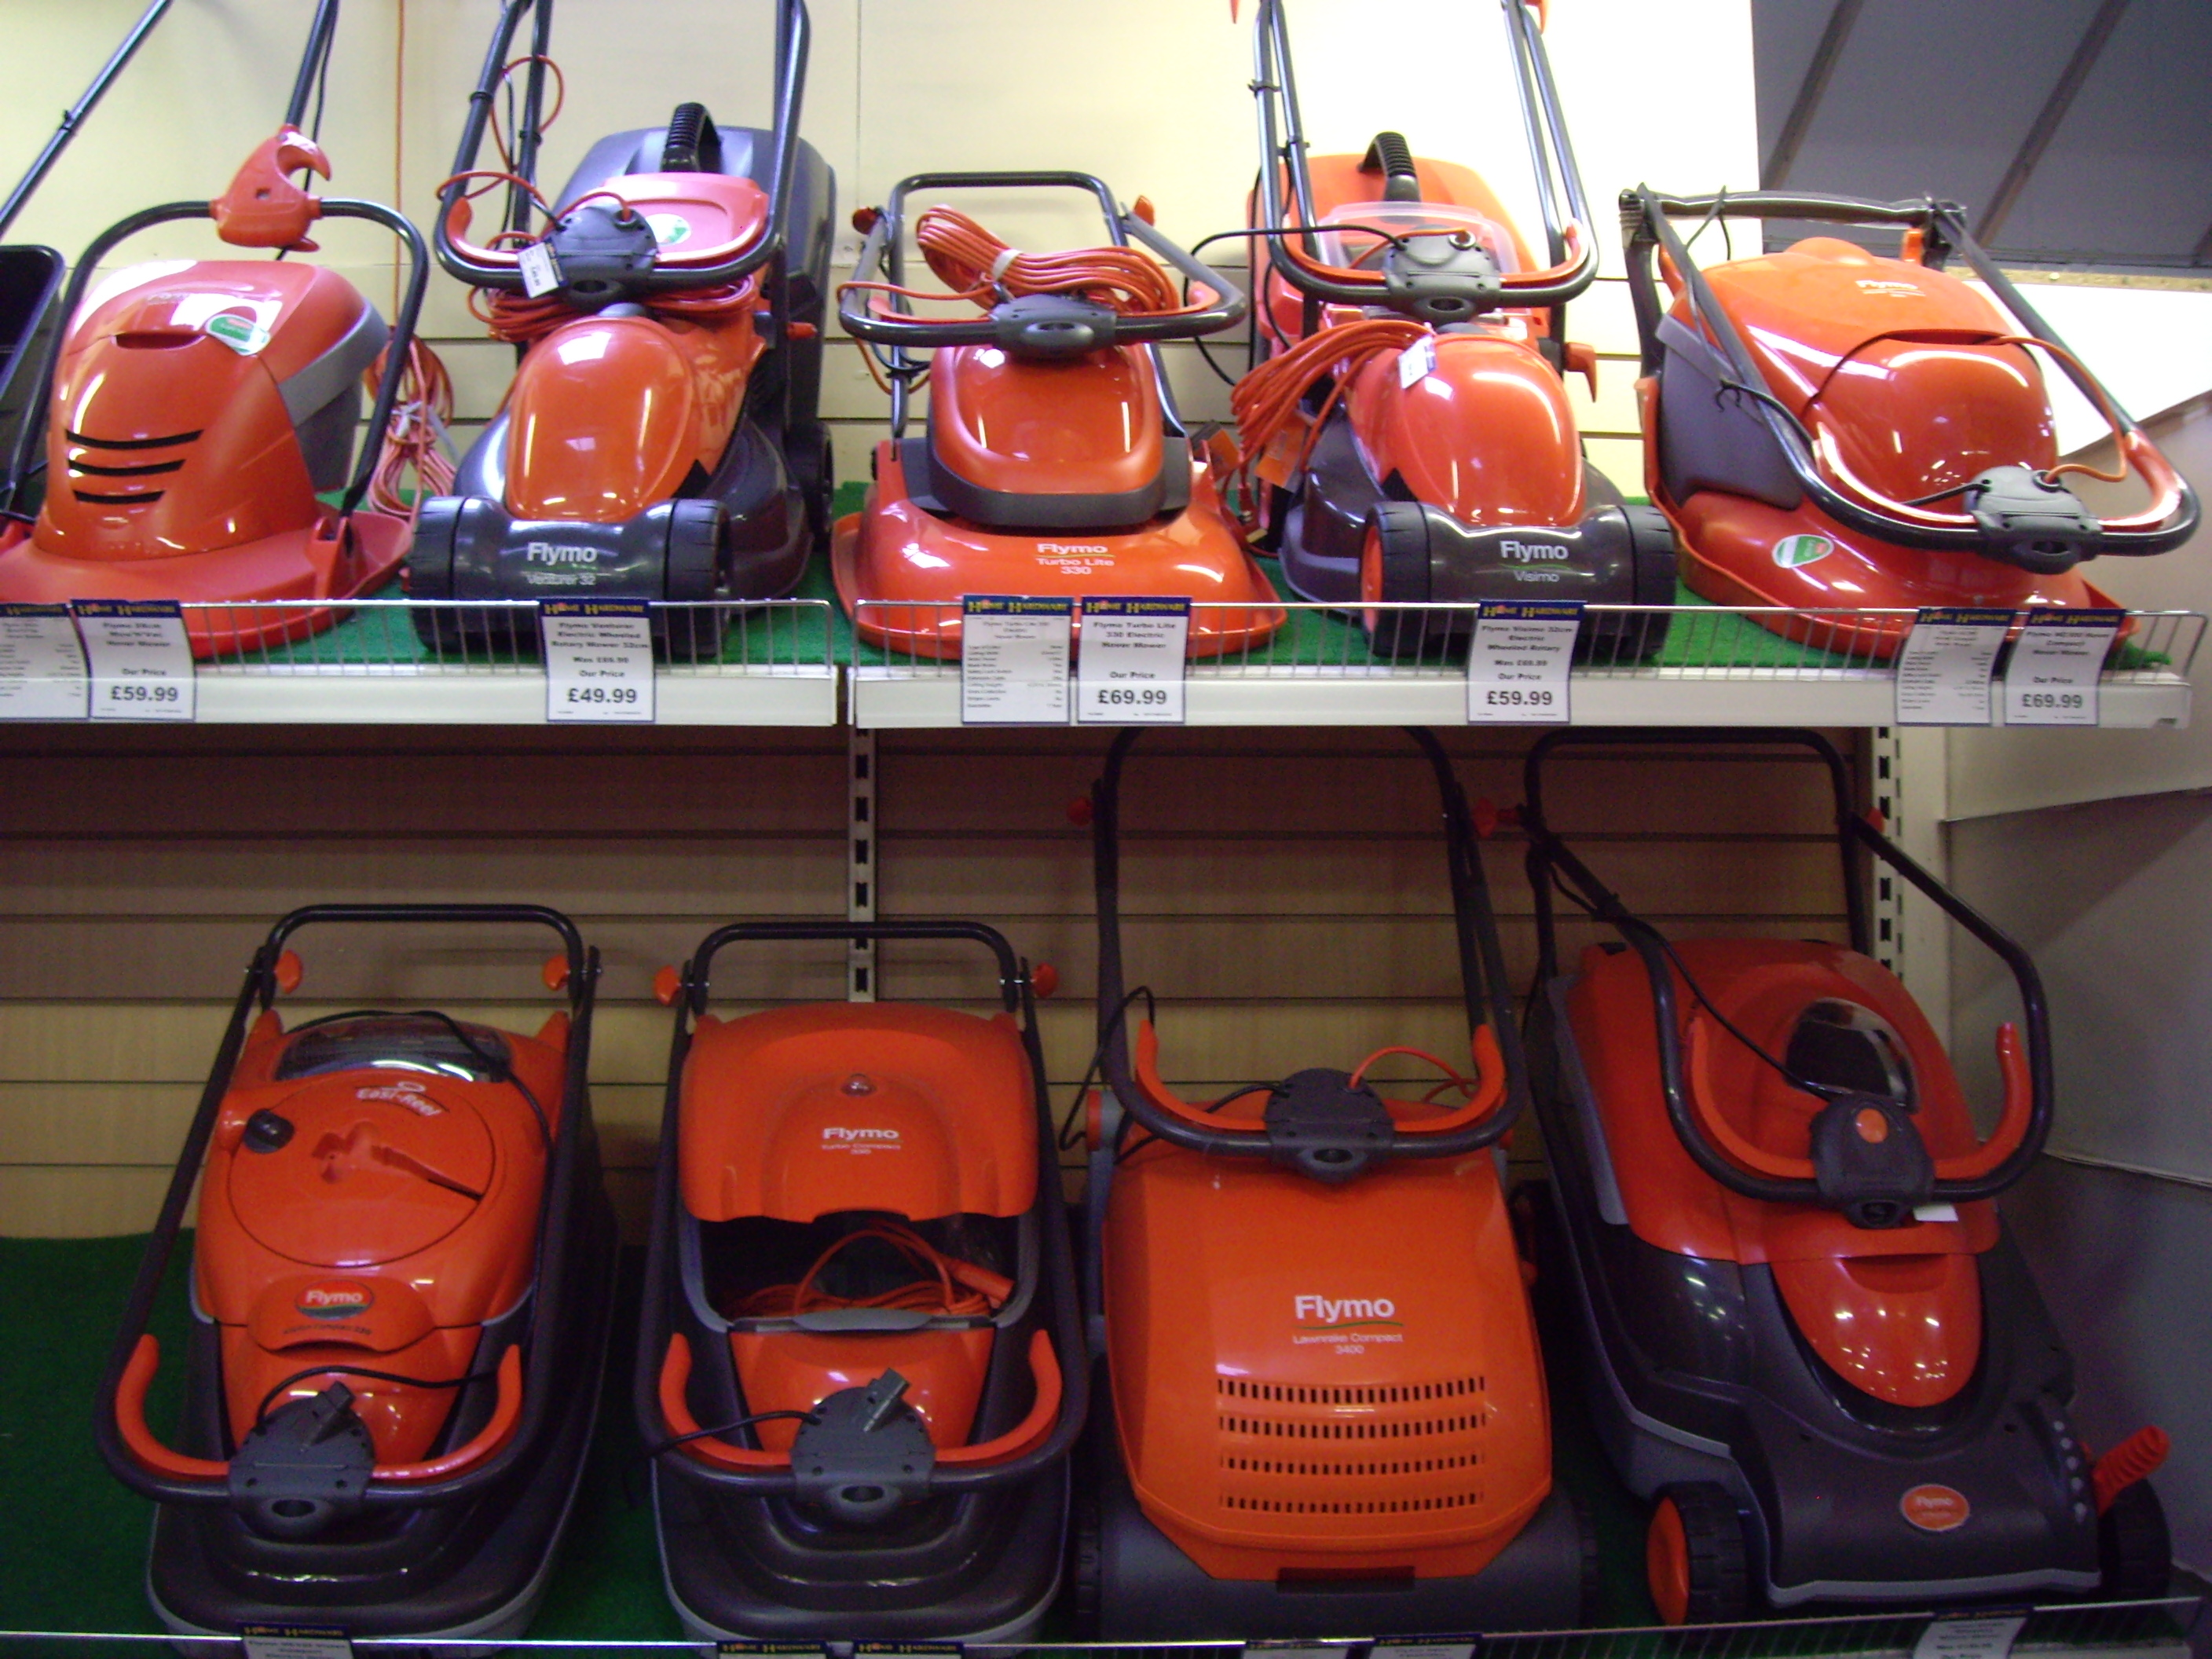 Choose the Best Lawn Mower For Your Lawn